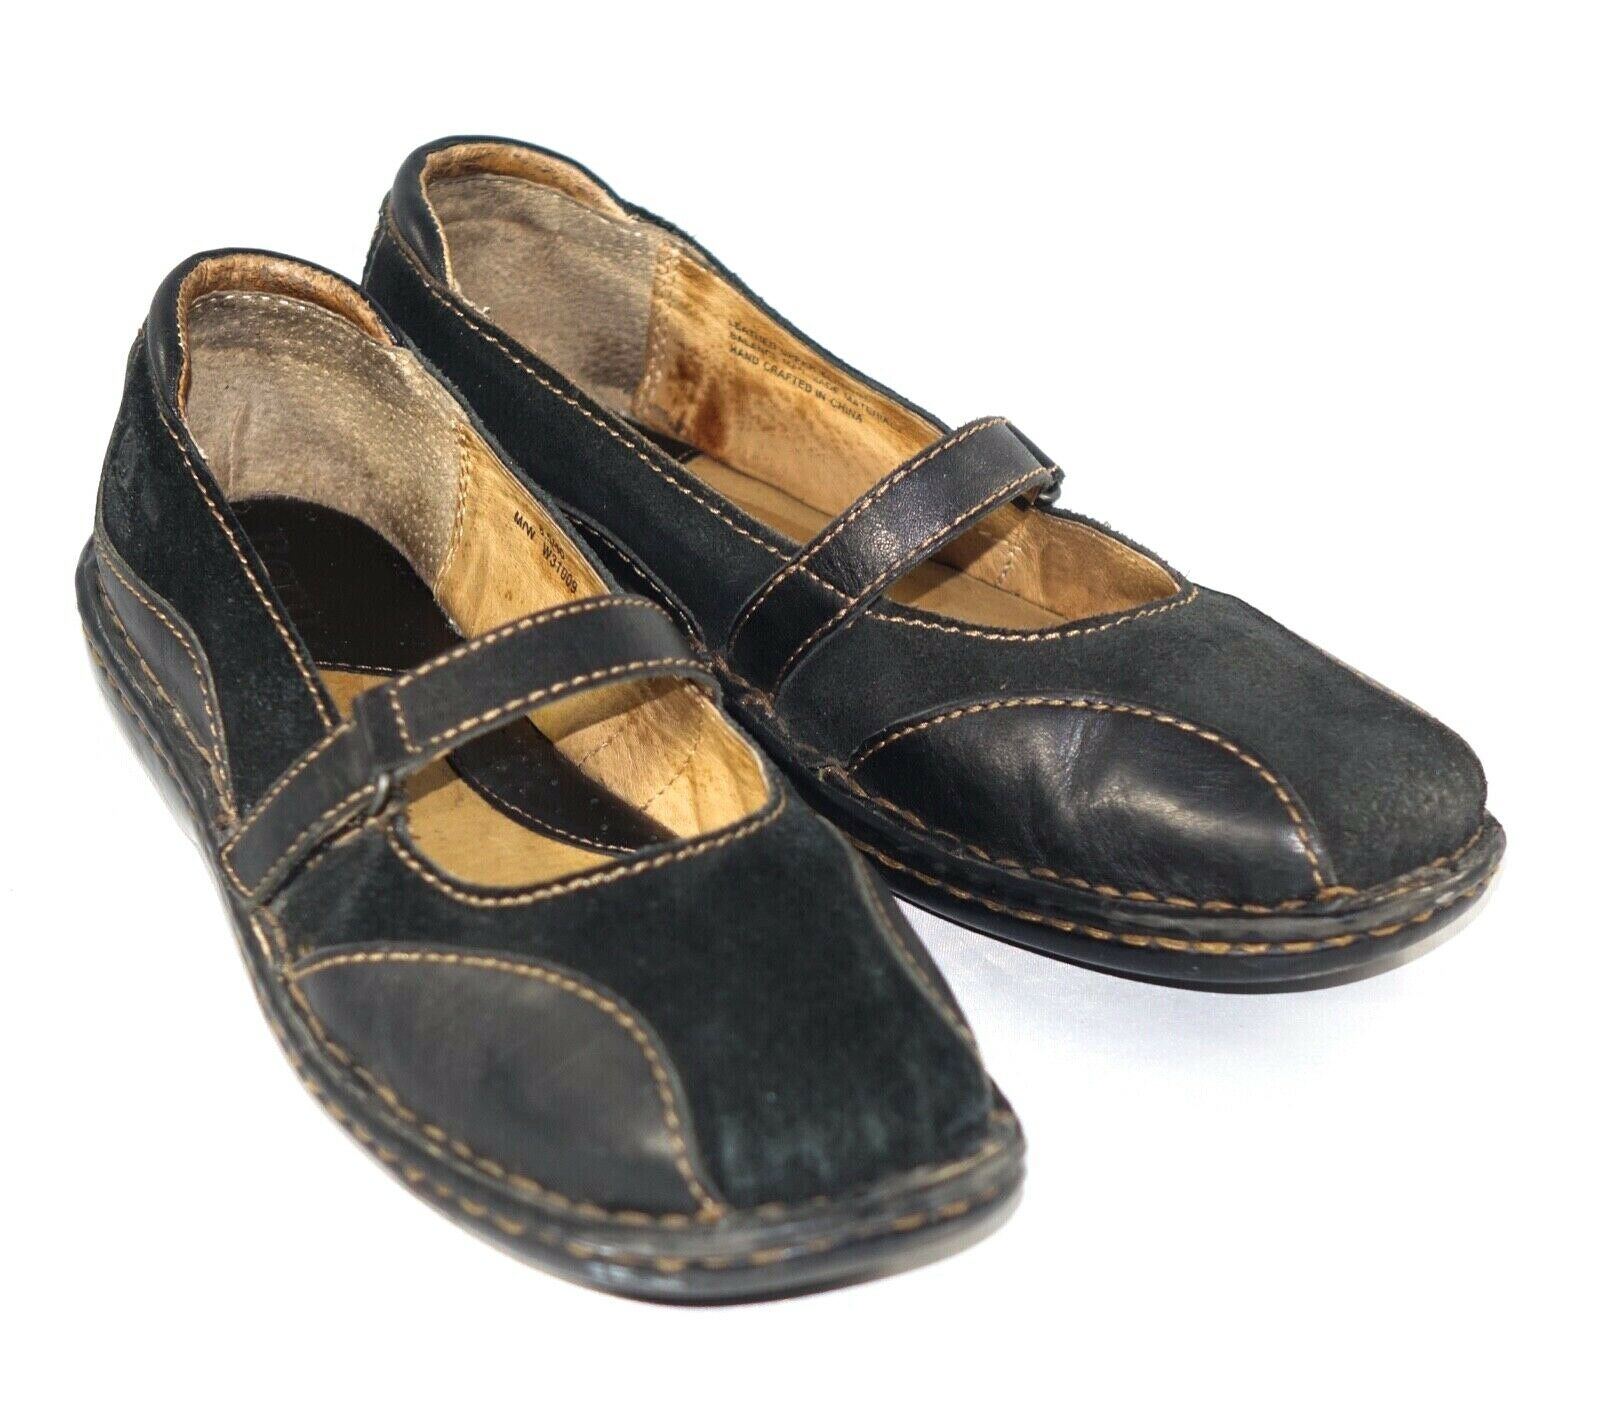 Born Women's Size 8.5 Black Hand Crafted Shoes Leather Mary Janes Comfort